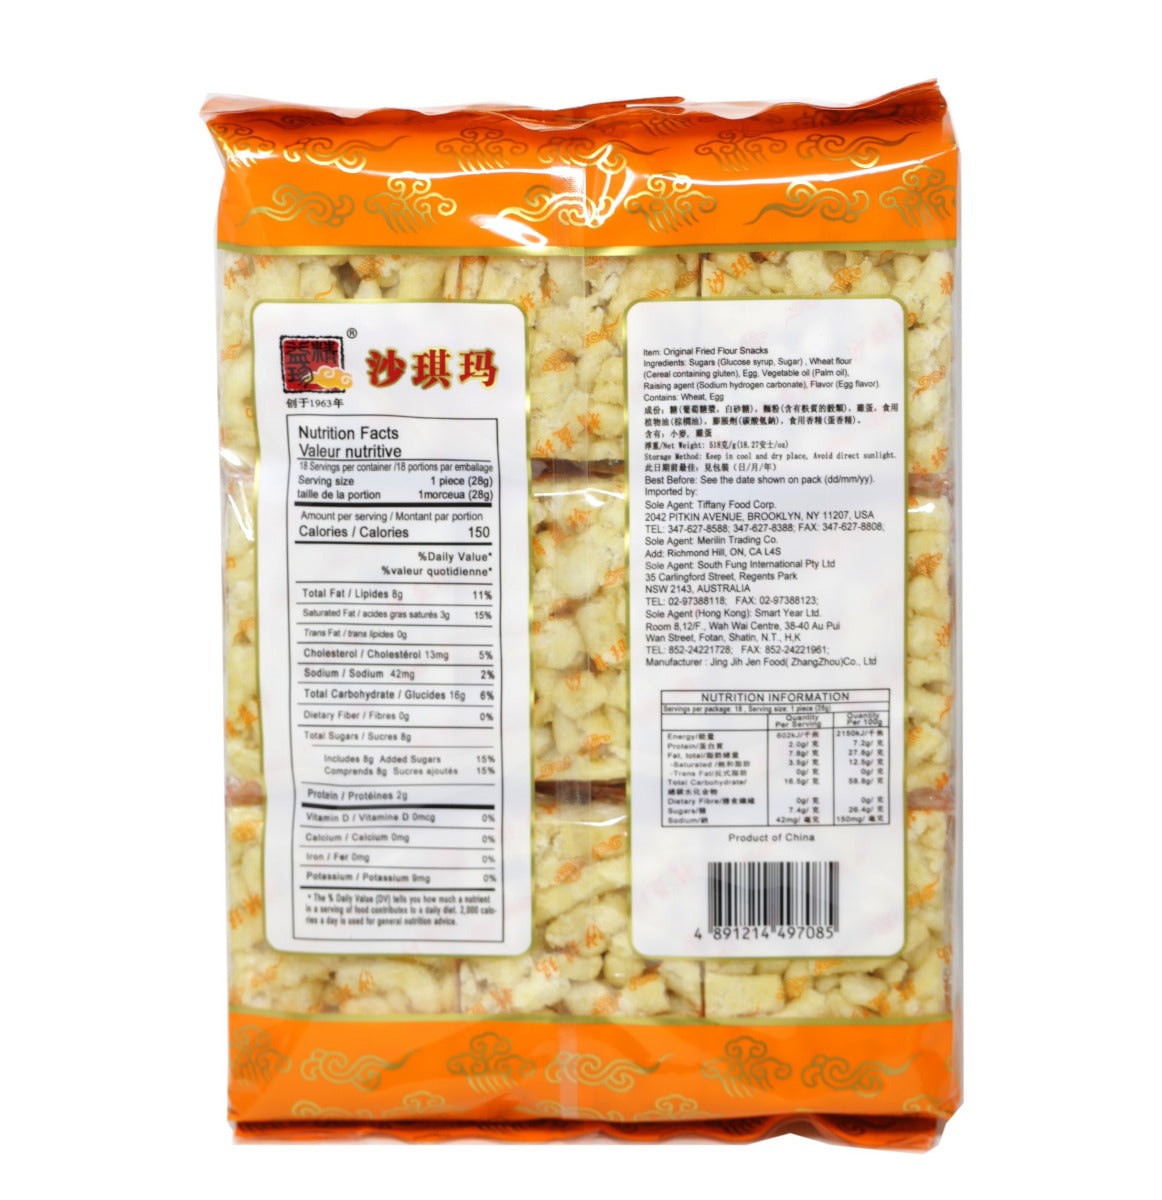 JINGYIZHEN Original Fried Flour Snacks 18.27 Oz (518 g) - 精益珍沙琪玛蛋酥味